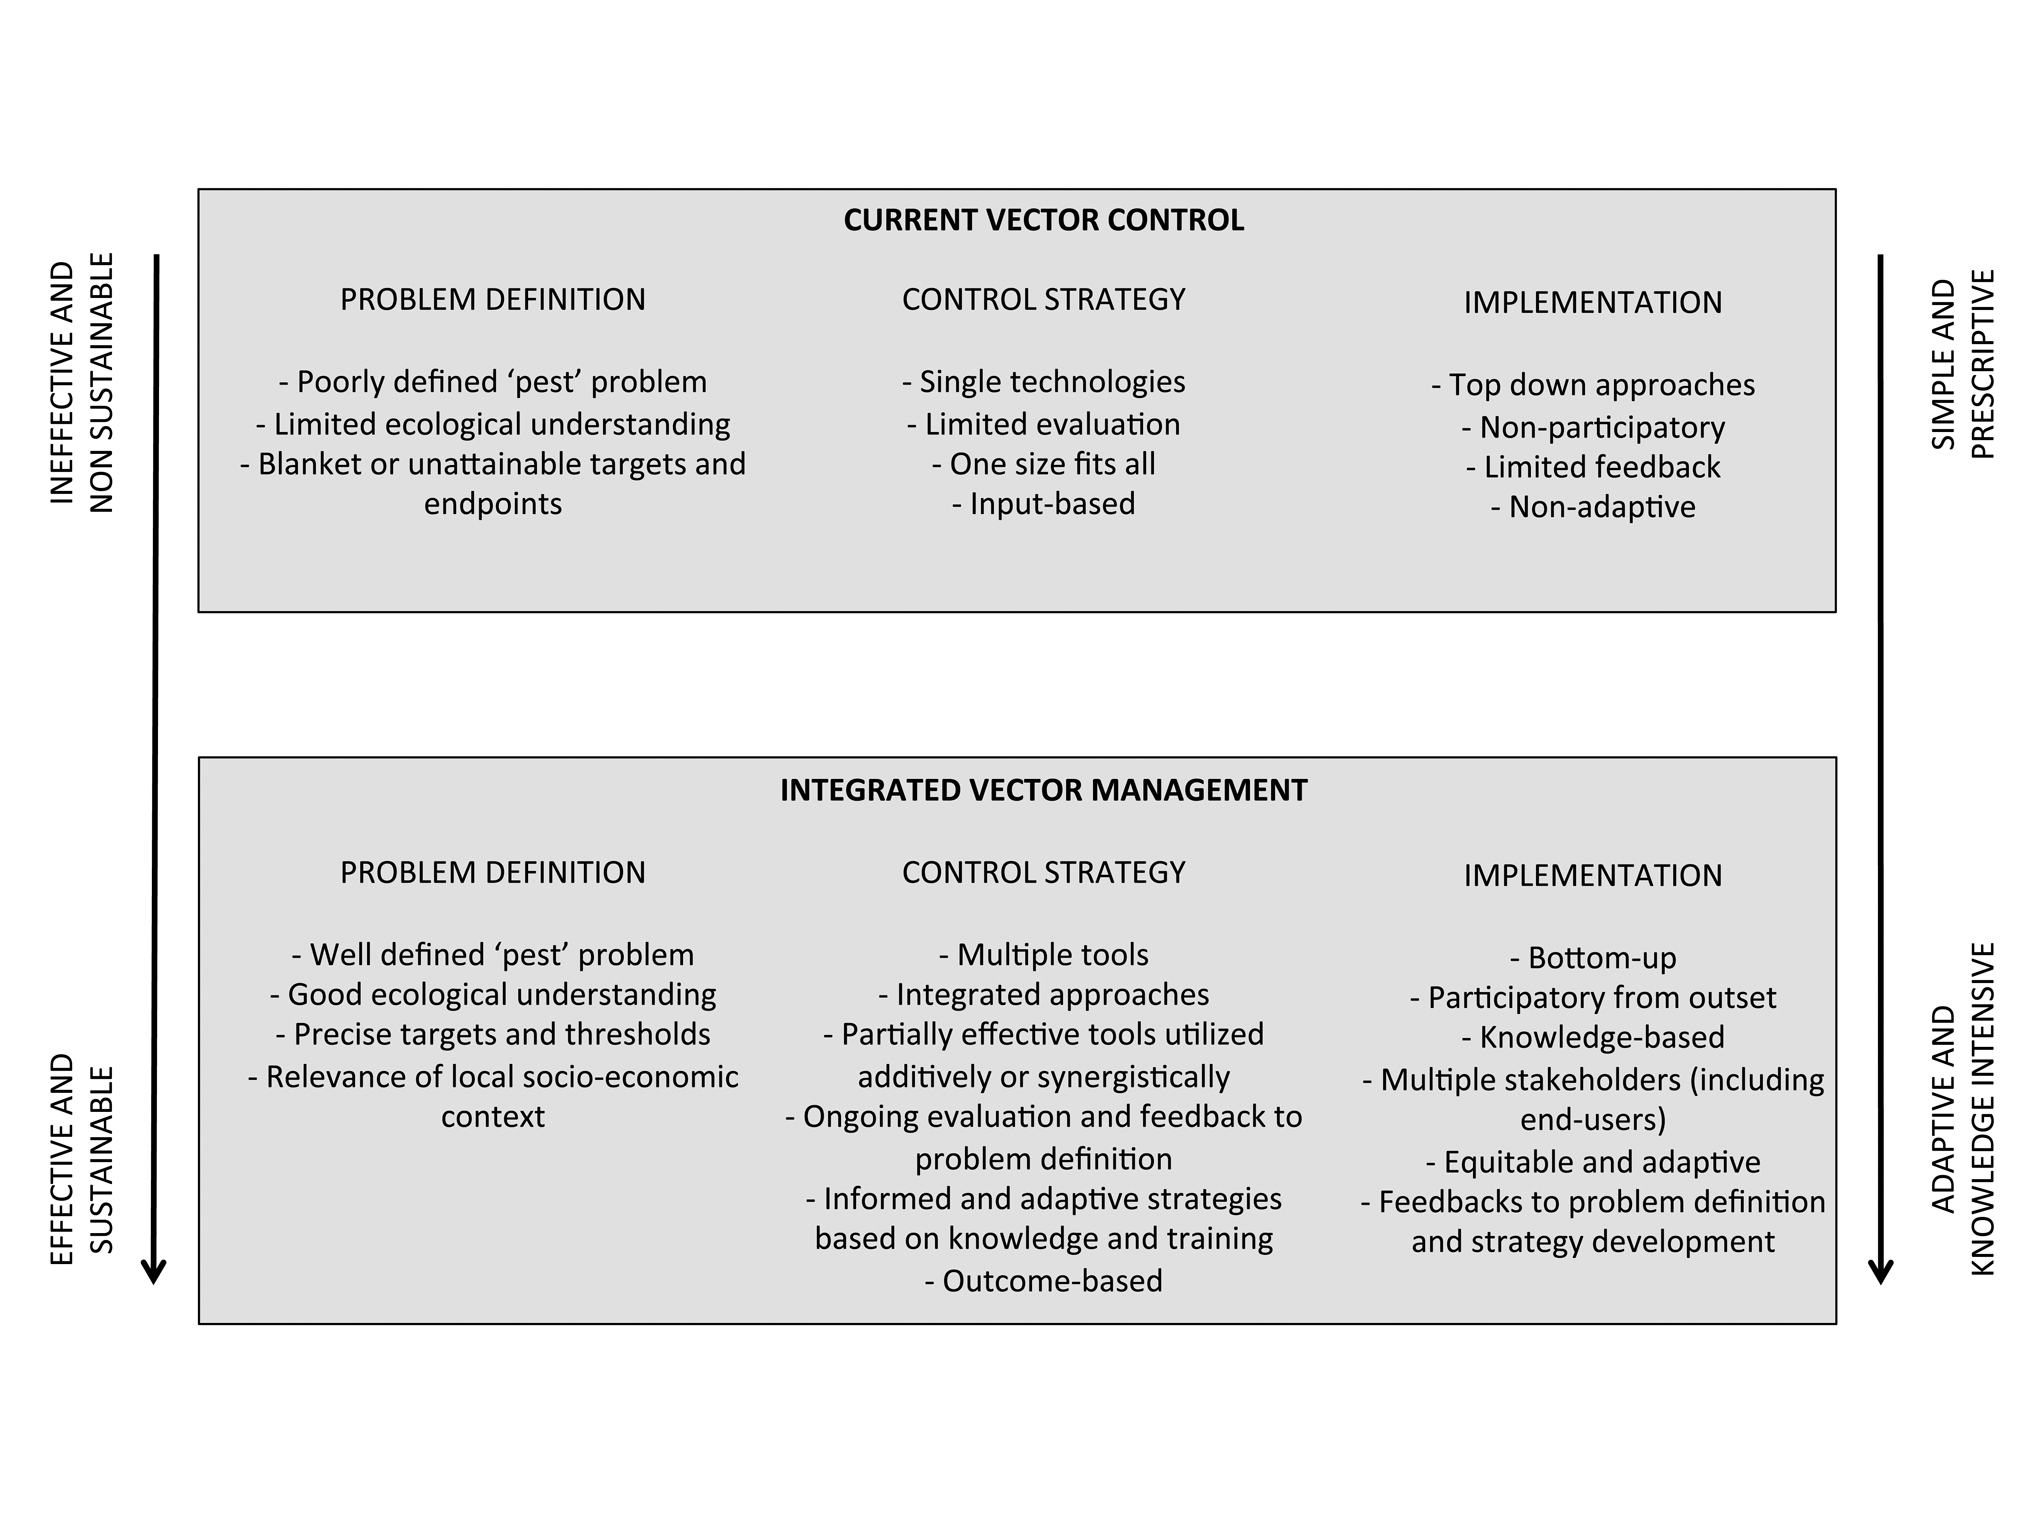 Features of current vector control strategies compared with potential integrated vector management (IVM).